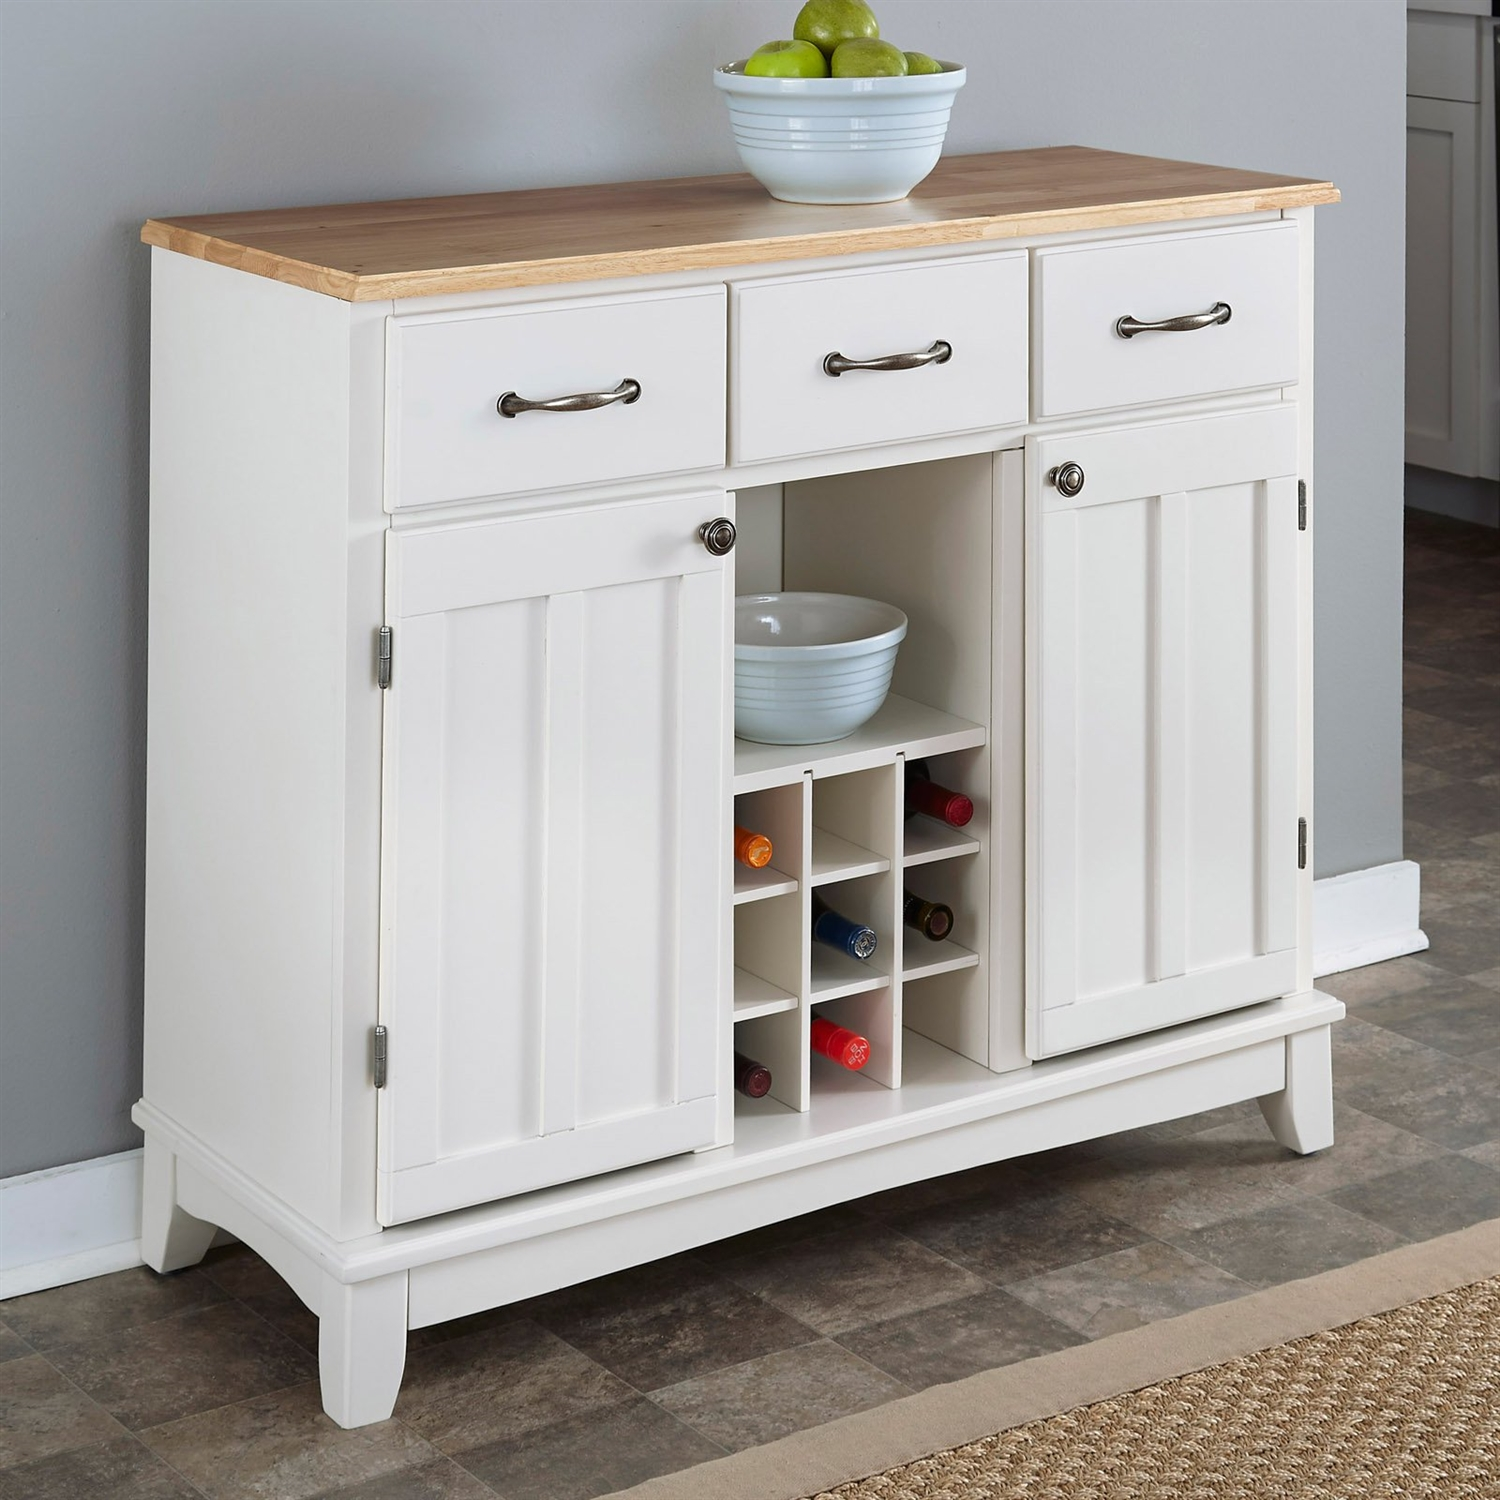 Natural Wood Top Kitchen Island Sideboard Cabinet Wine